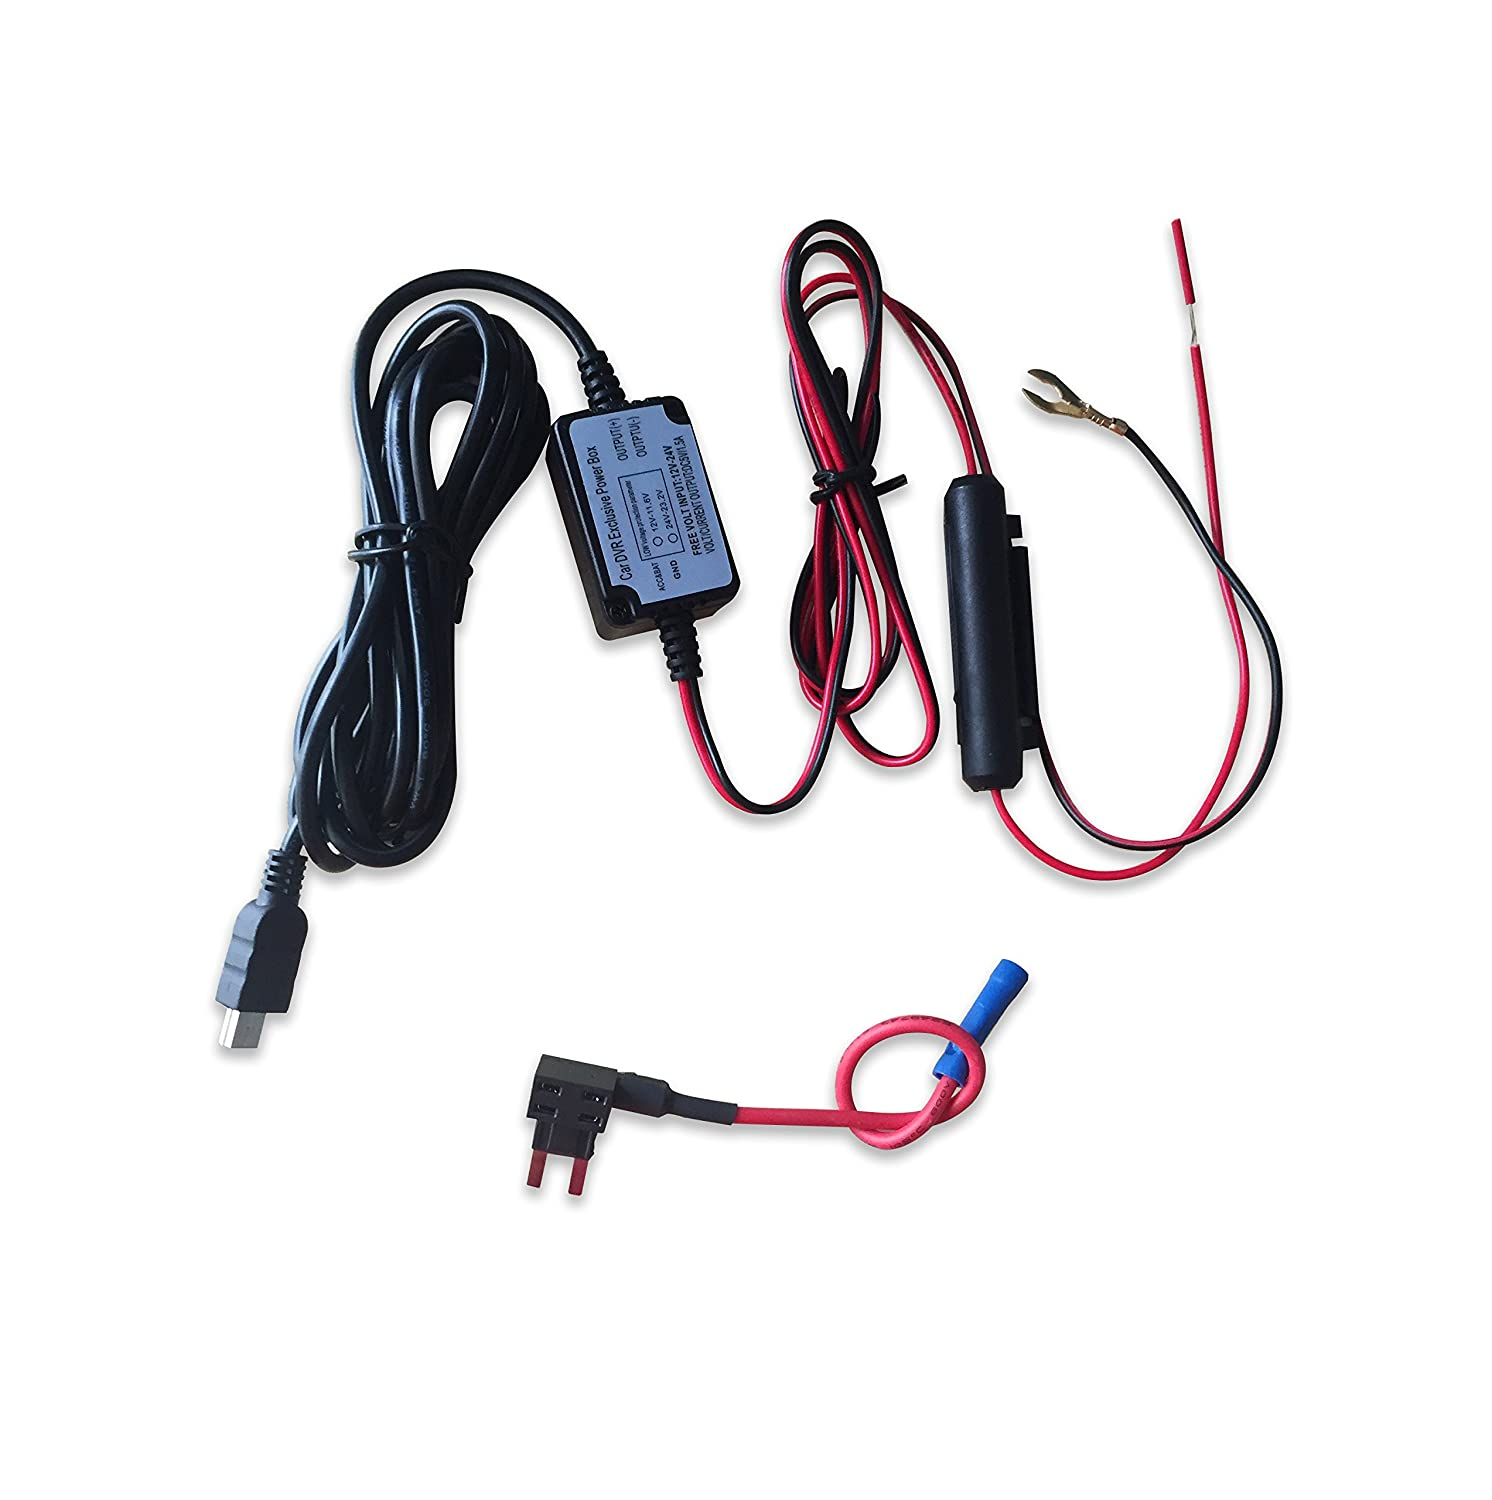 81vasrBJwWL._SL1500_ amazon com wocst car camera hard wire kit mini usb dash cam 10 House Fuse Box Diagram at bayanpartner.co